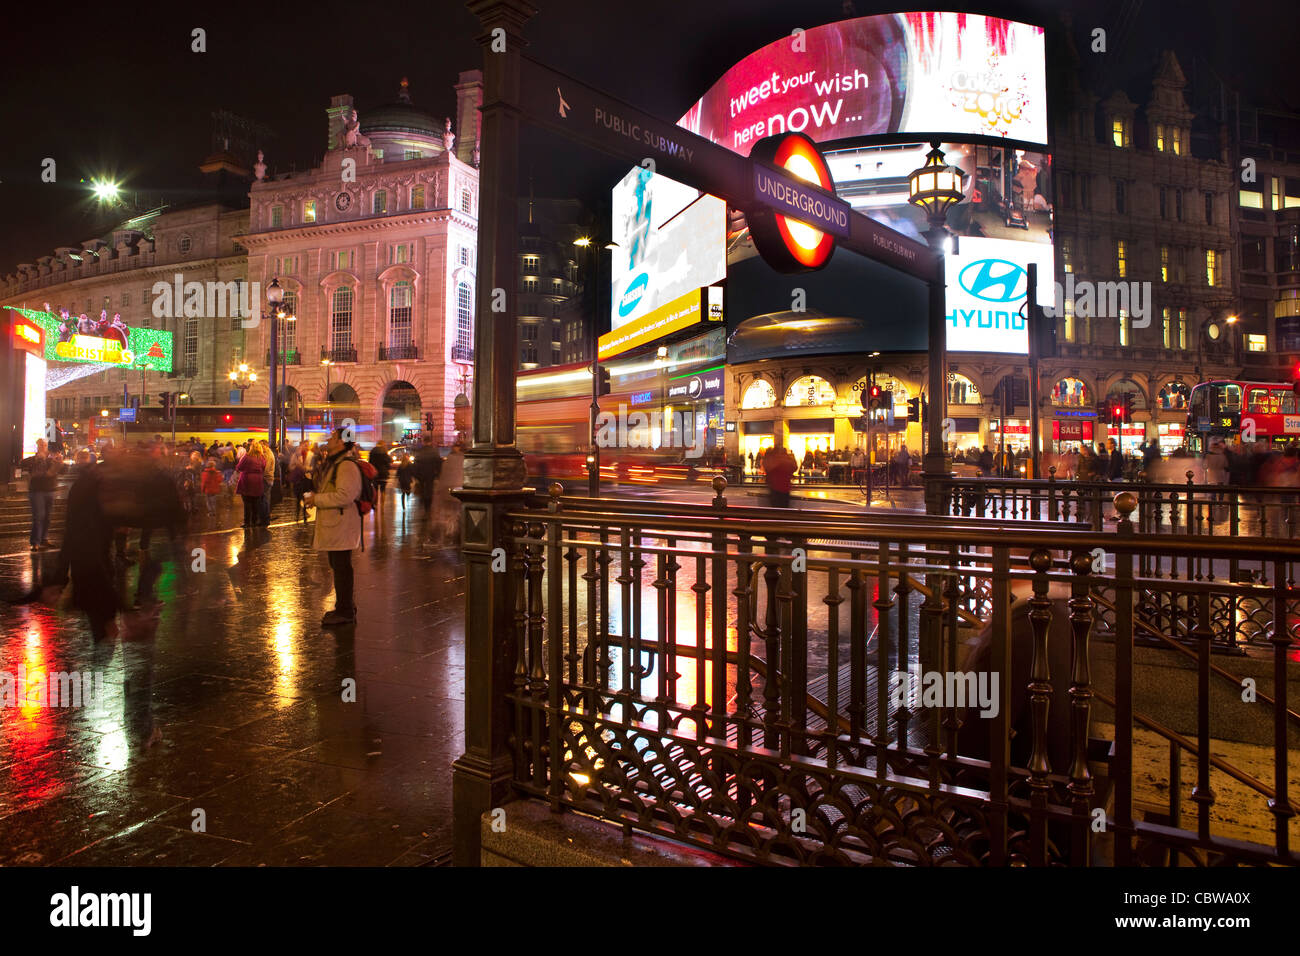 Piccadilly Circus in London at night time. - Stock Image